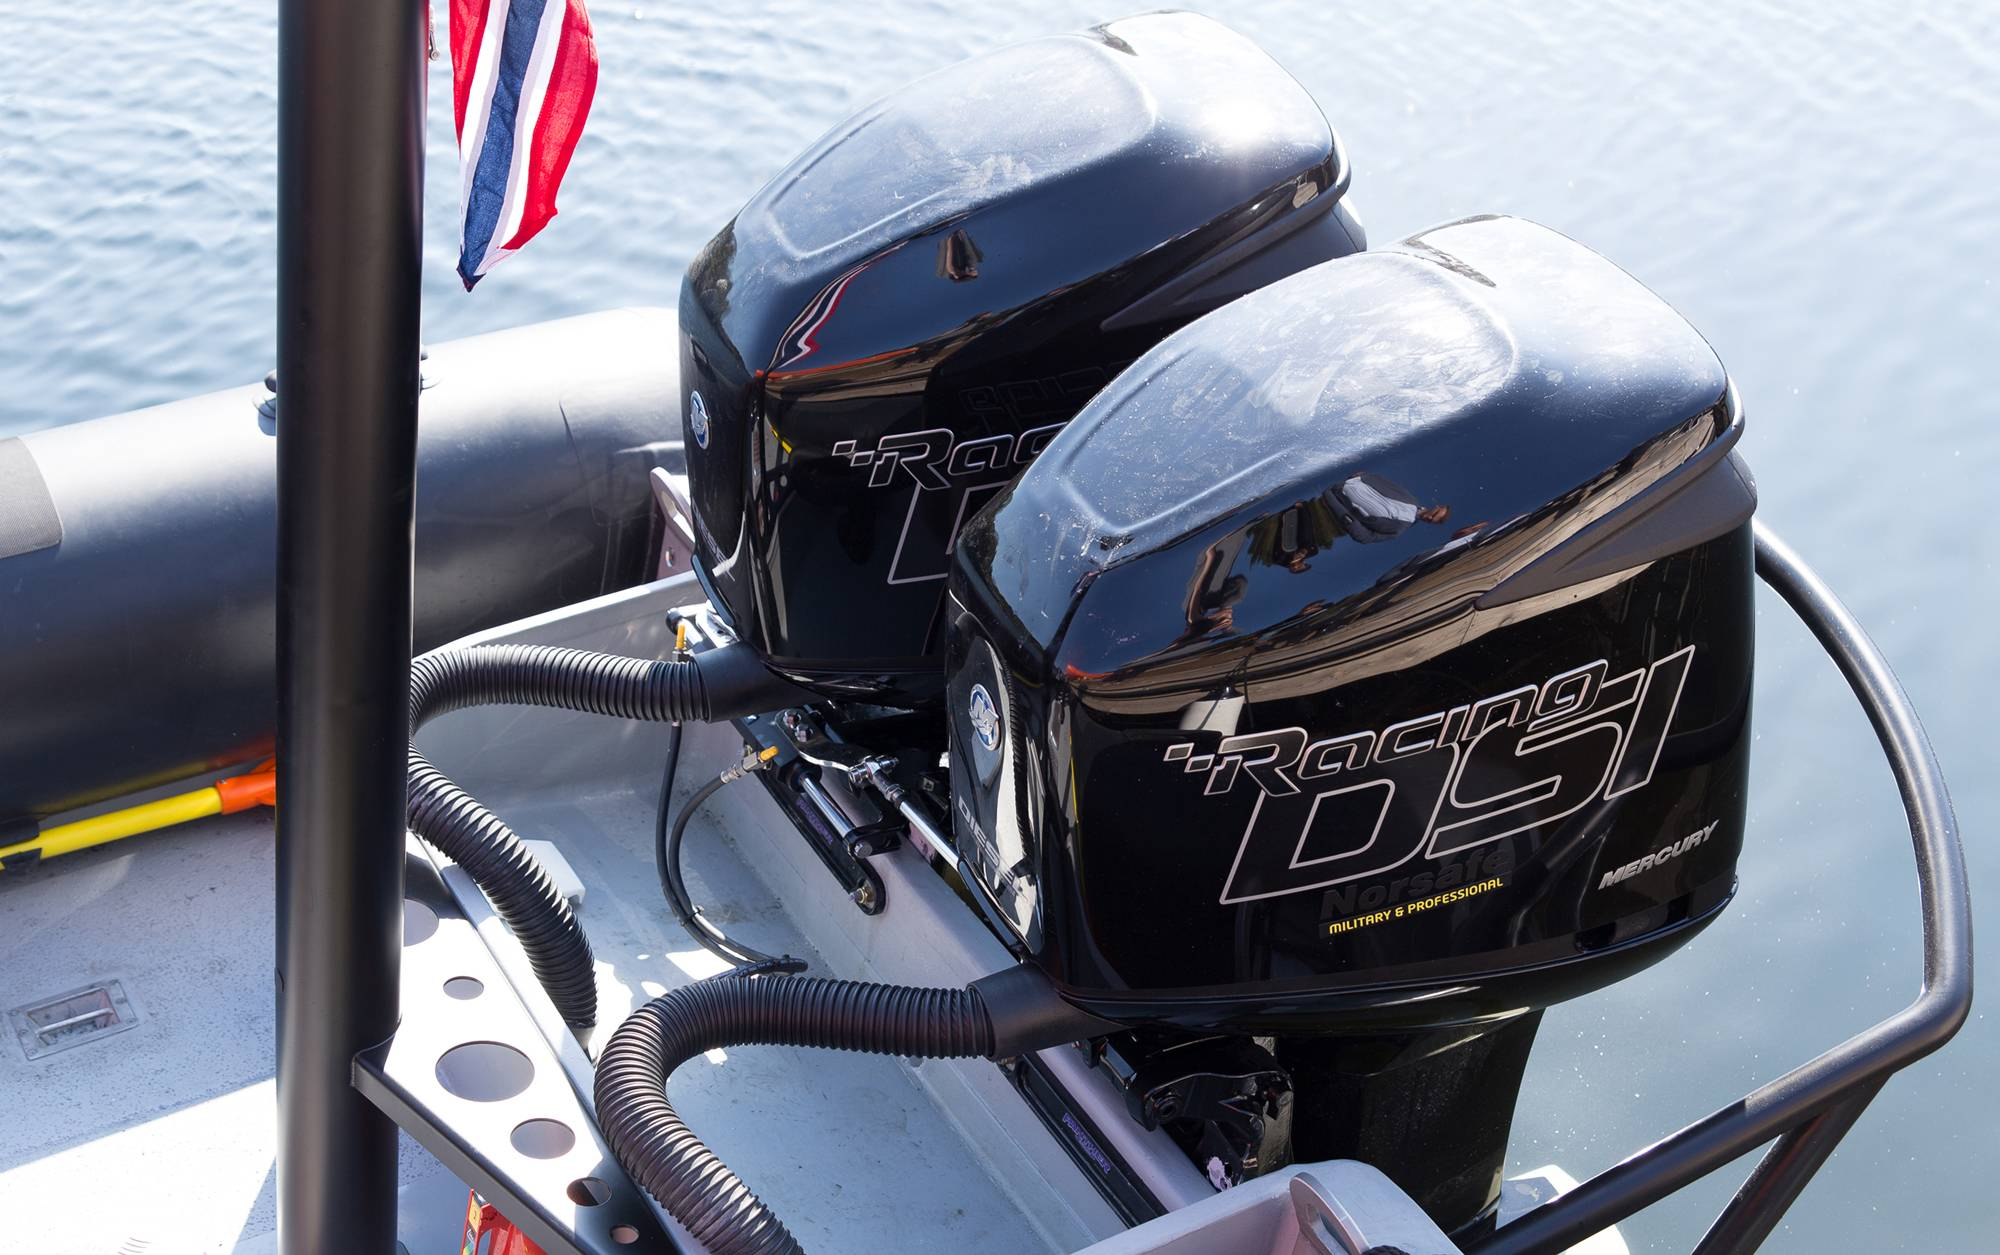 New Norsafe Boat With Diesel Outboards Debuts